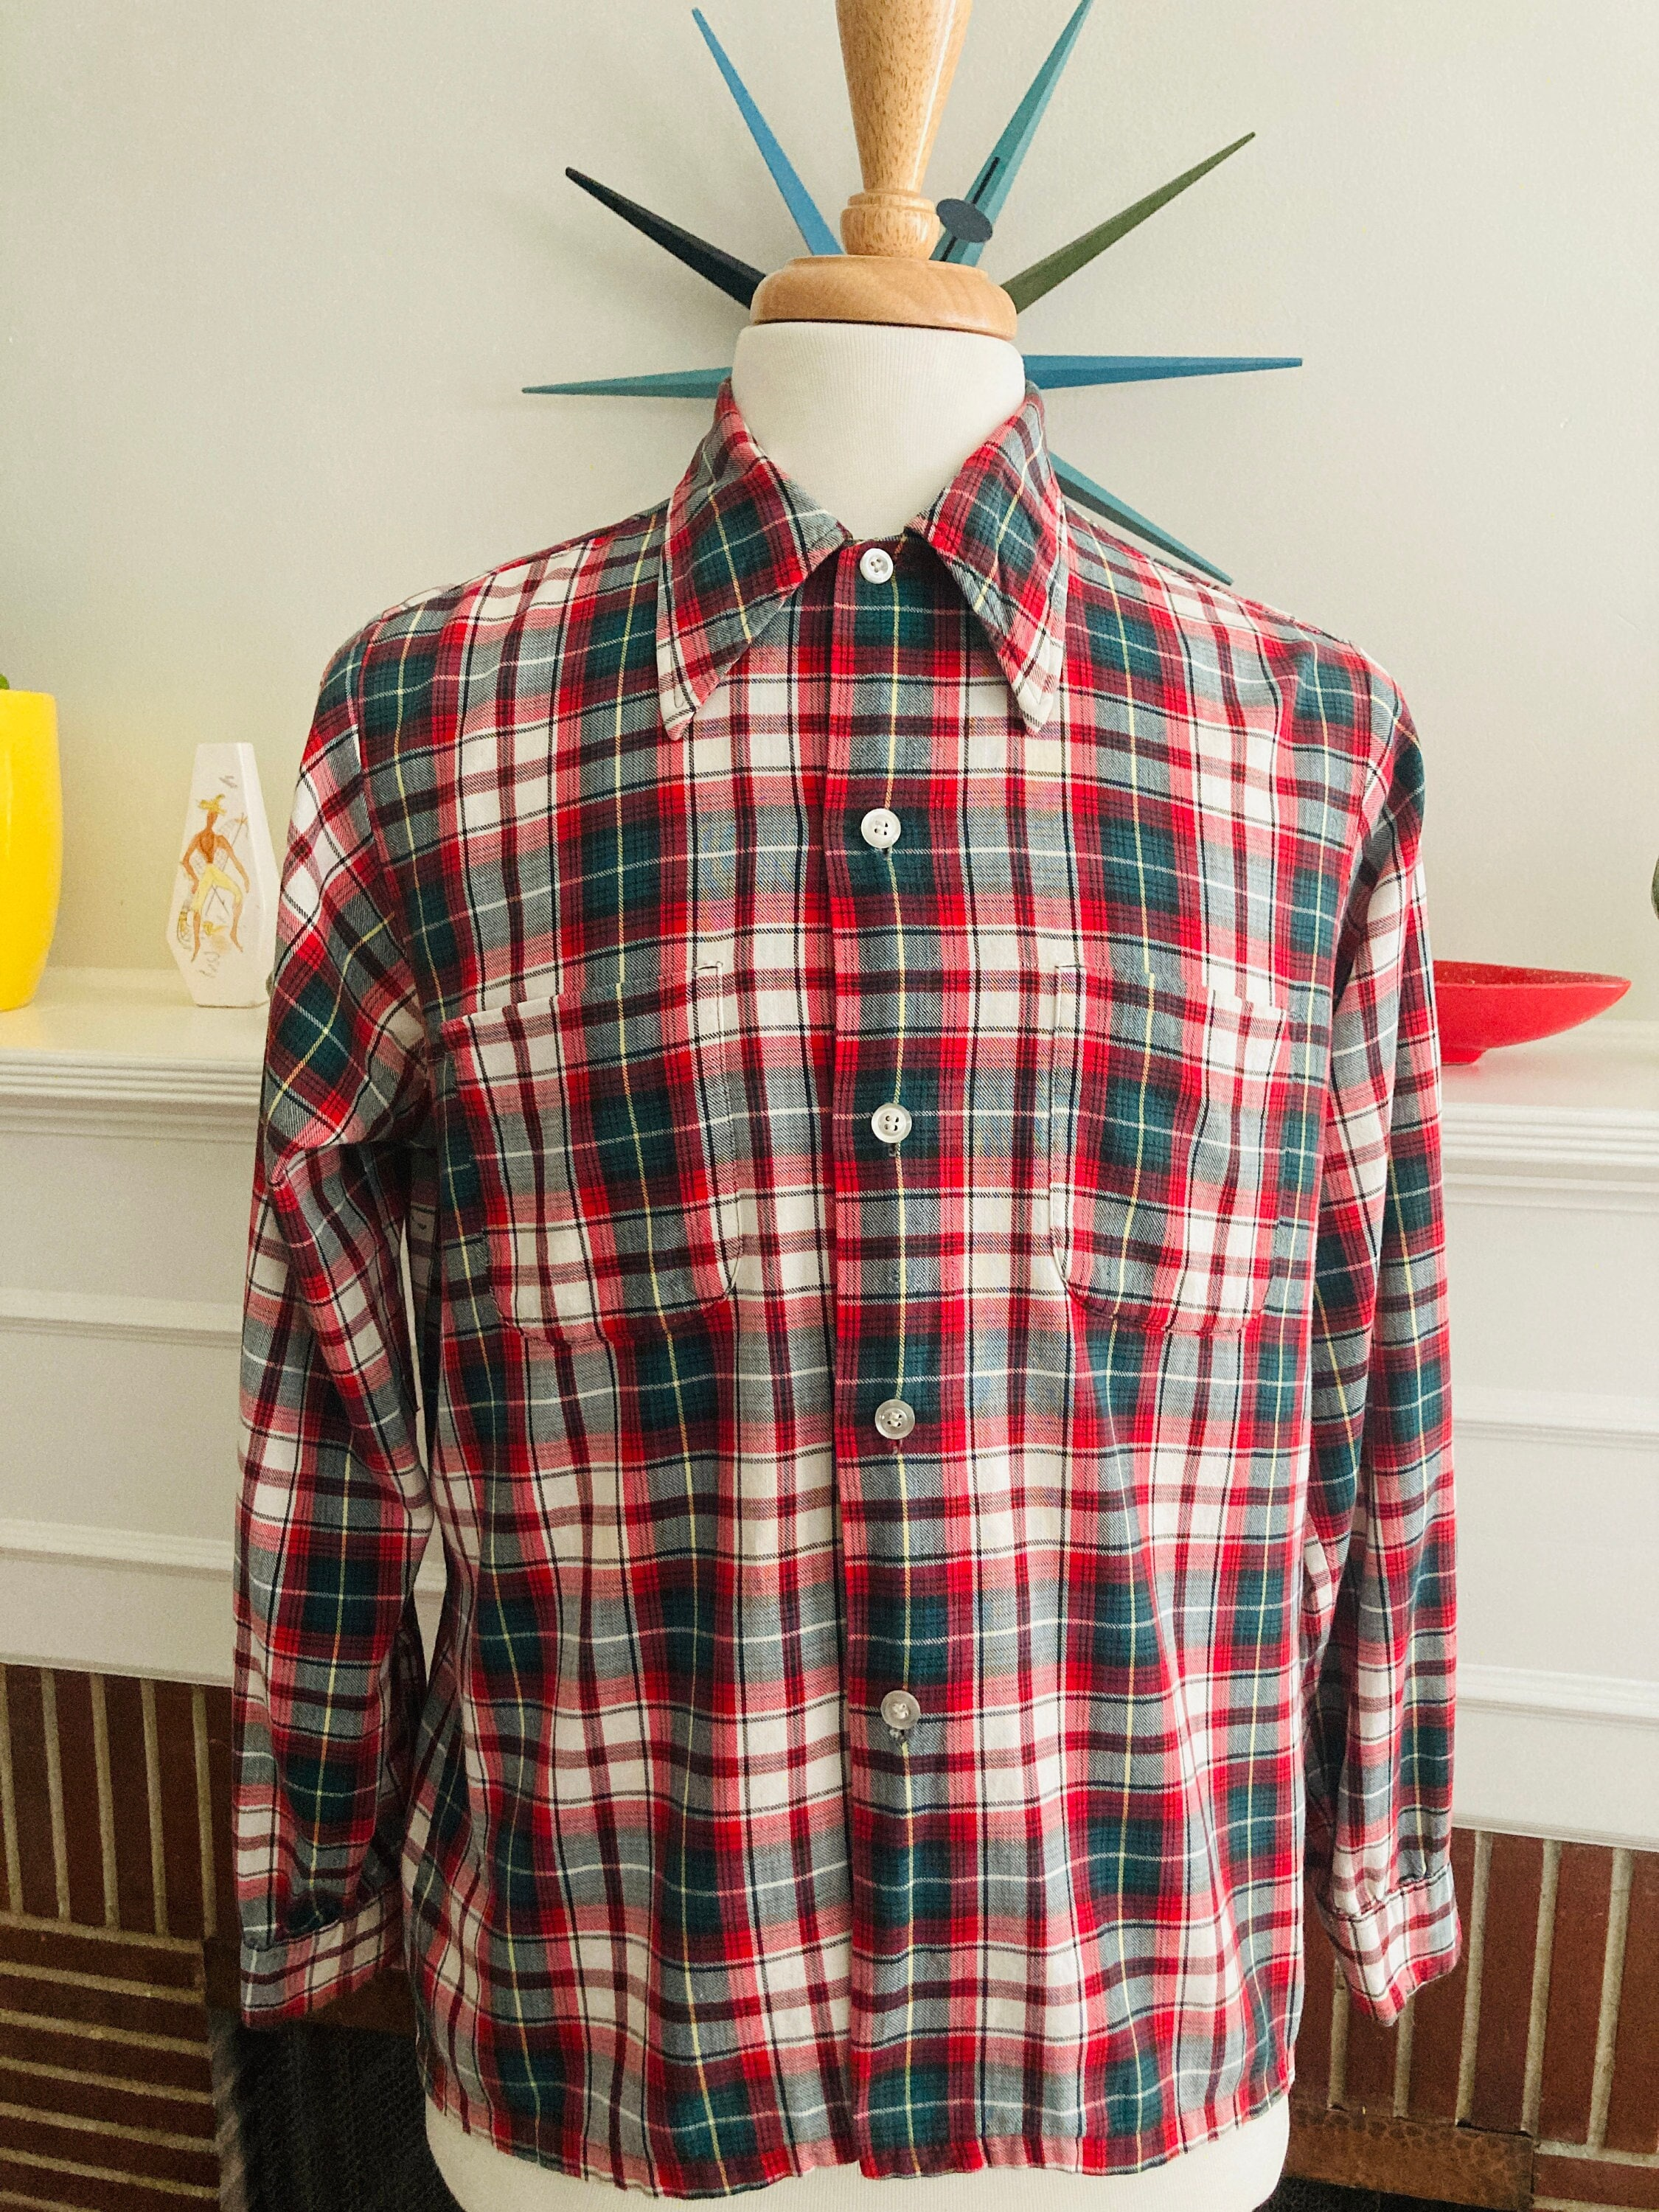 1940s Men's Shirts, Sweaters, Vests 1940S Classic May Co Mens Buffalo Plaid Long Sleeve Pocketed Rayon Shirt-Size M $75.00 AT vintagedancer.com